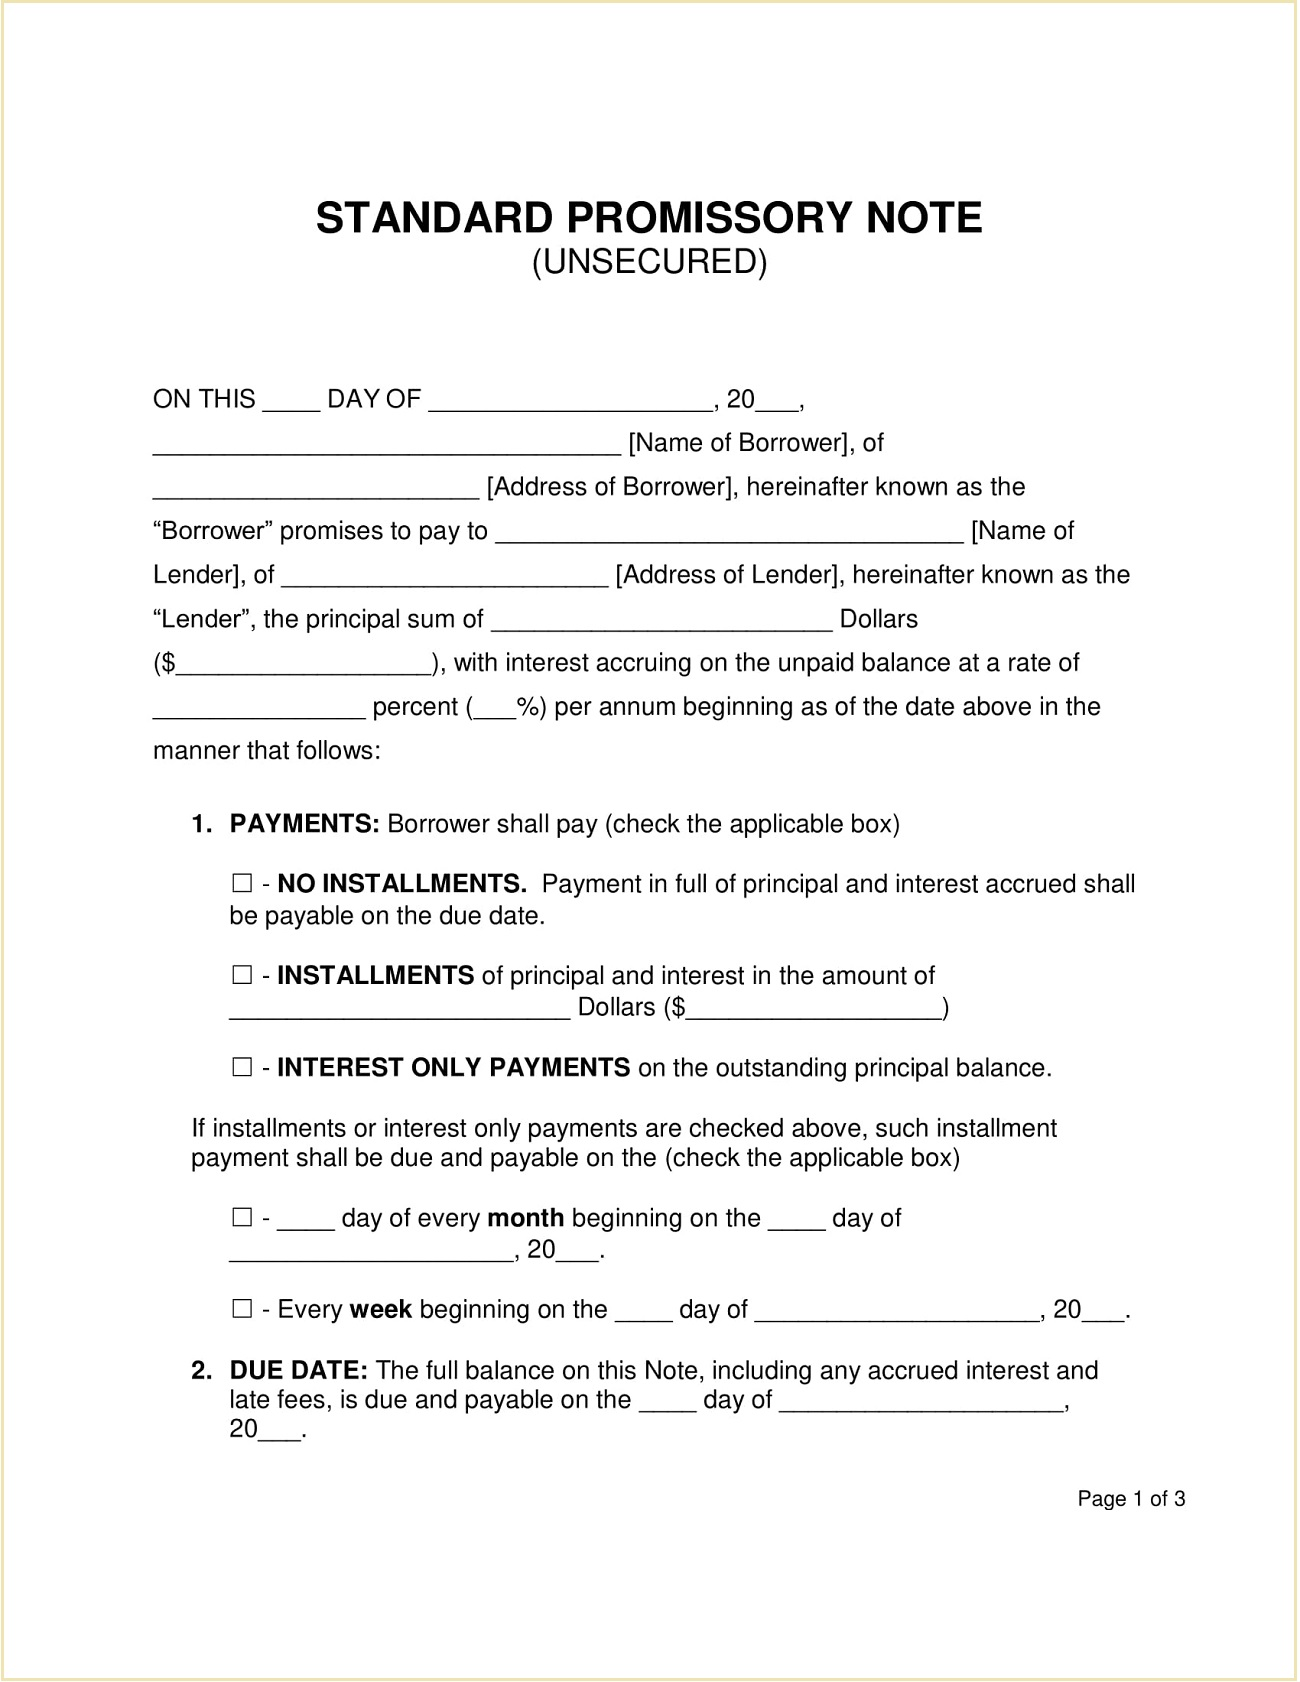 Unsecured Promissory Note Template PDF